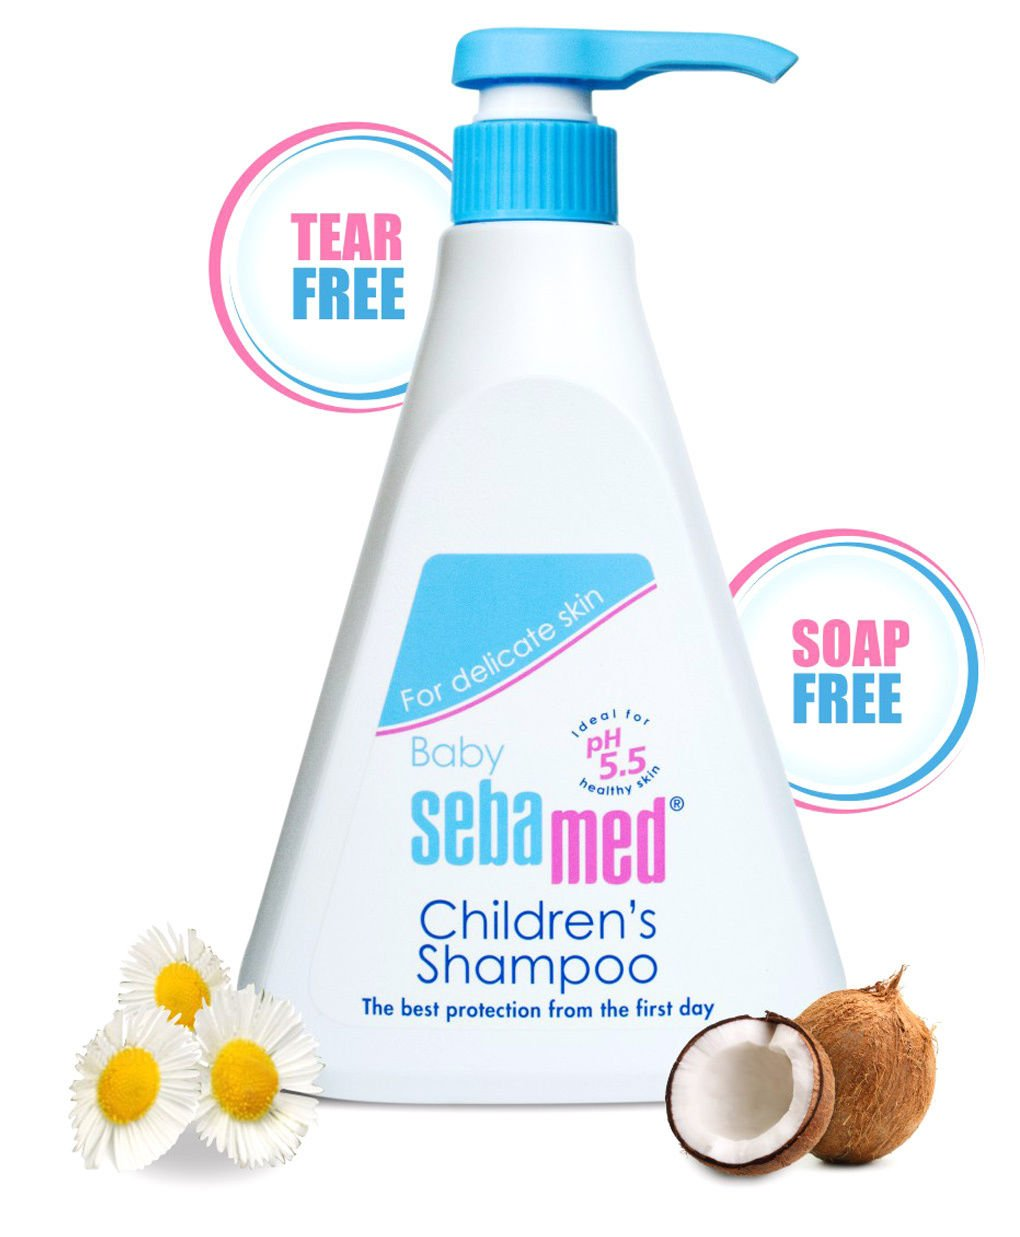 SebaMed Childrens' Shampoo, 500Ml 0-3 Months White by SEBAMED